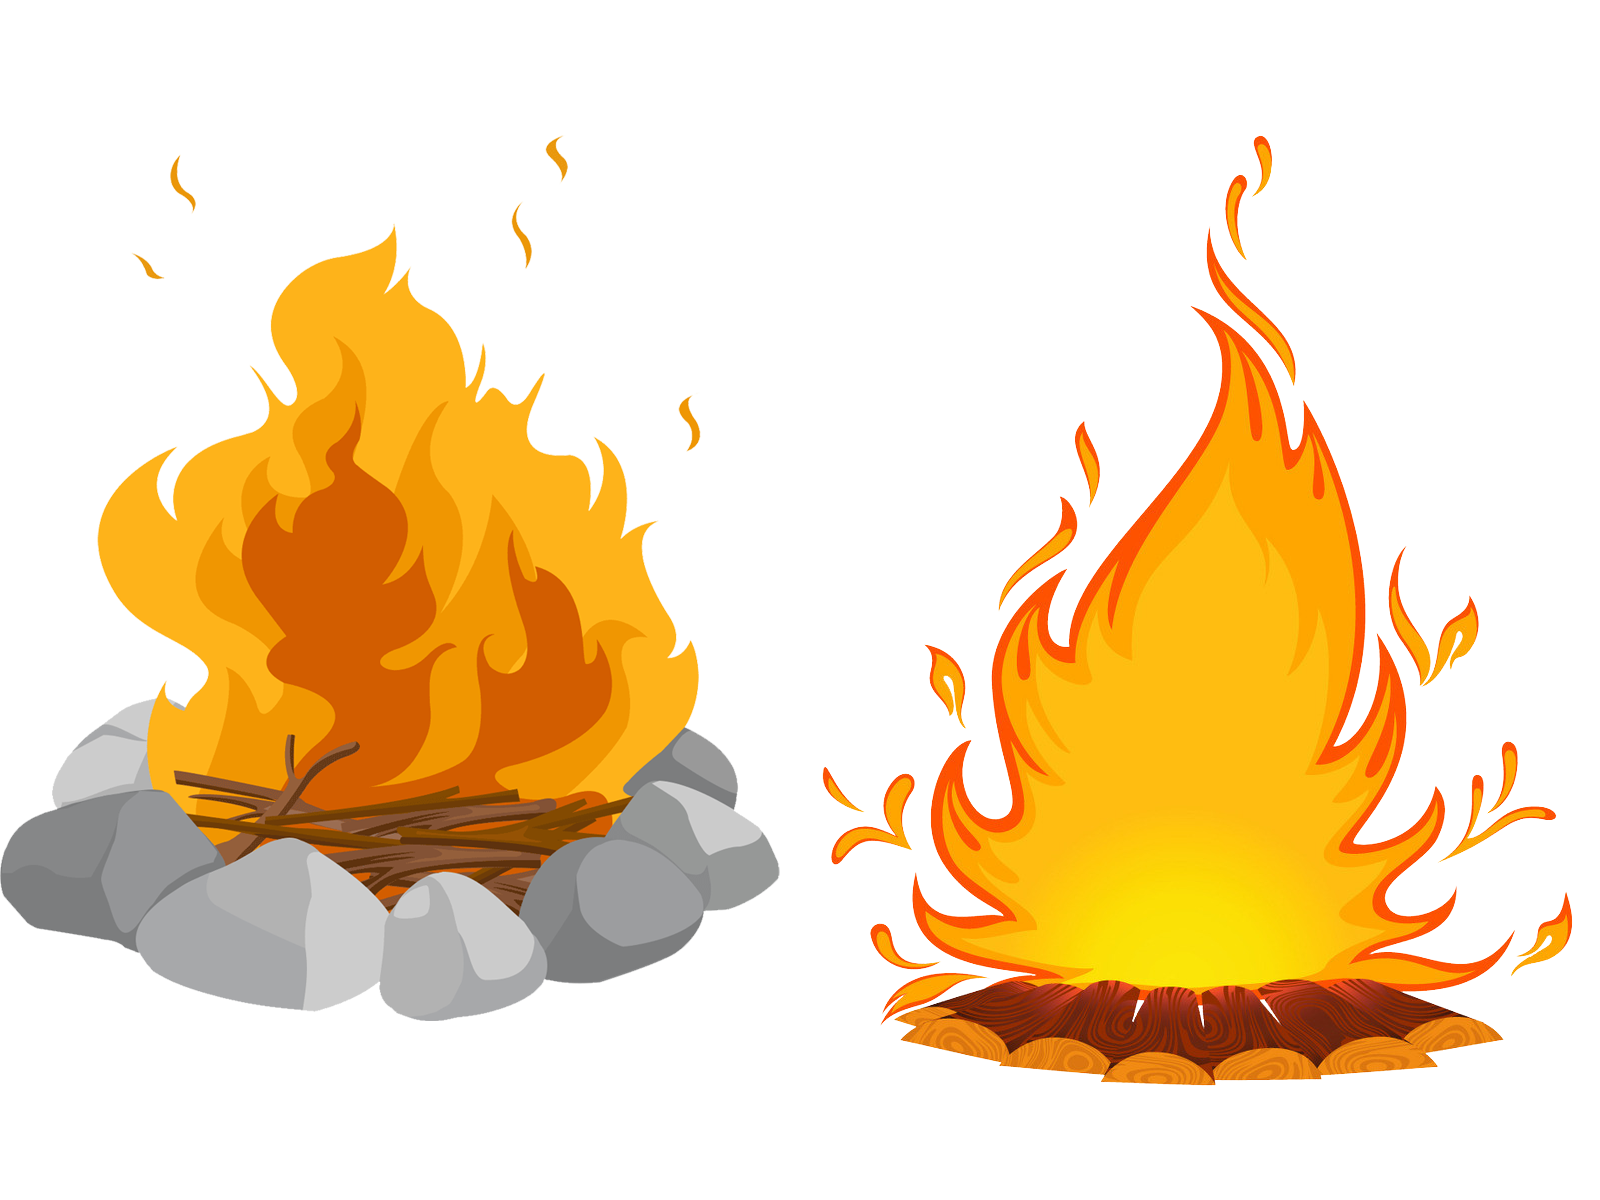 Clipart Flames Royalty Free, Clipart Flames Royalty Free